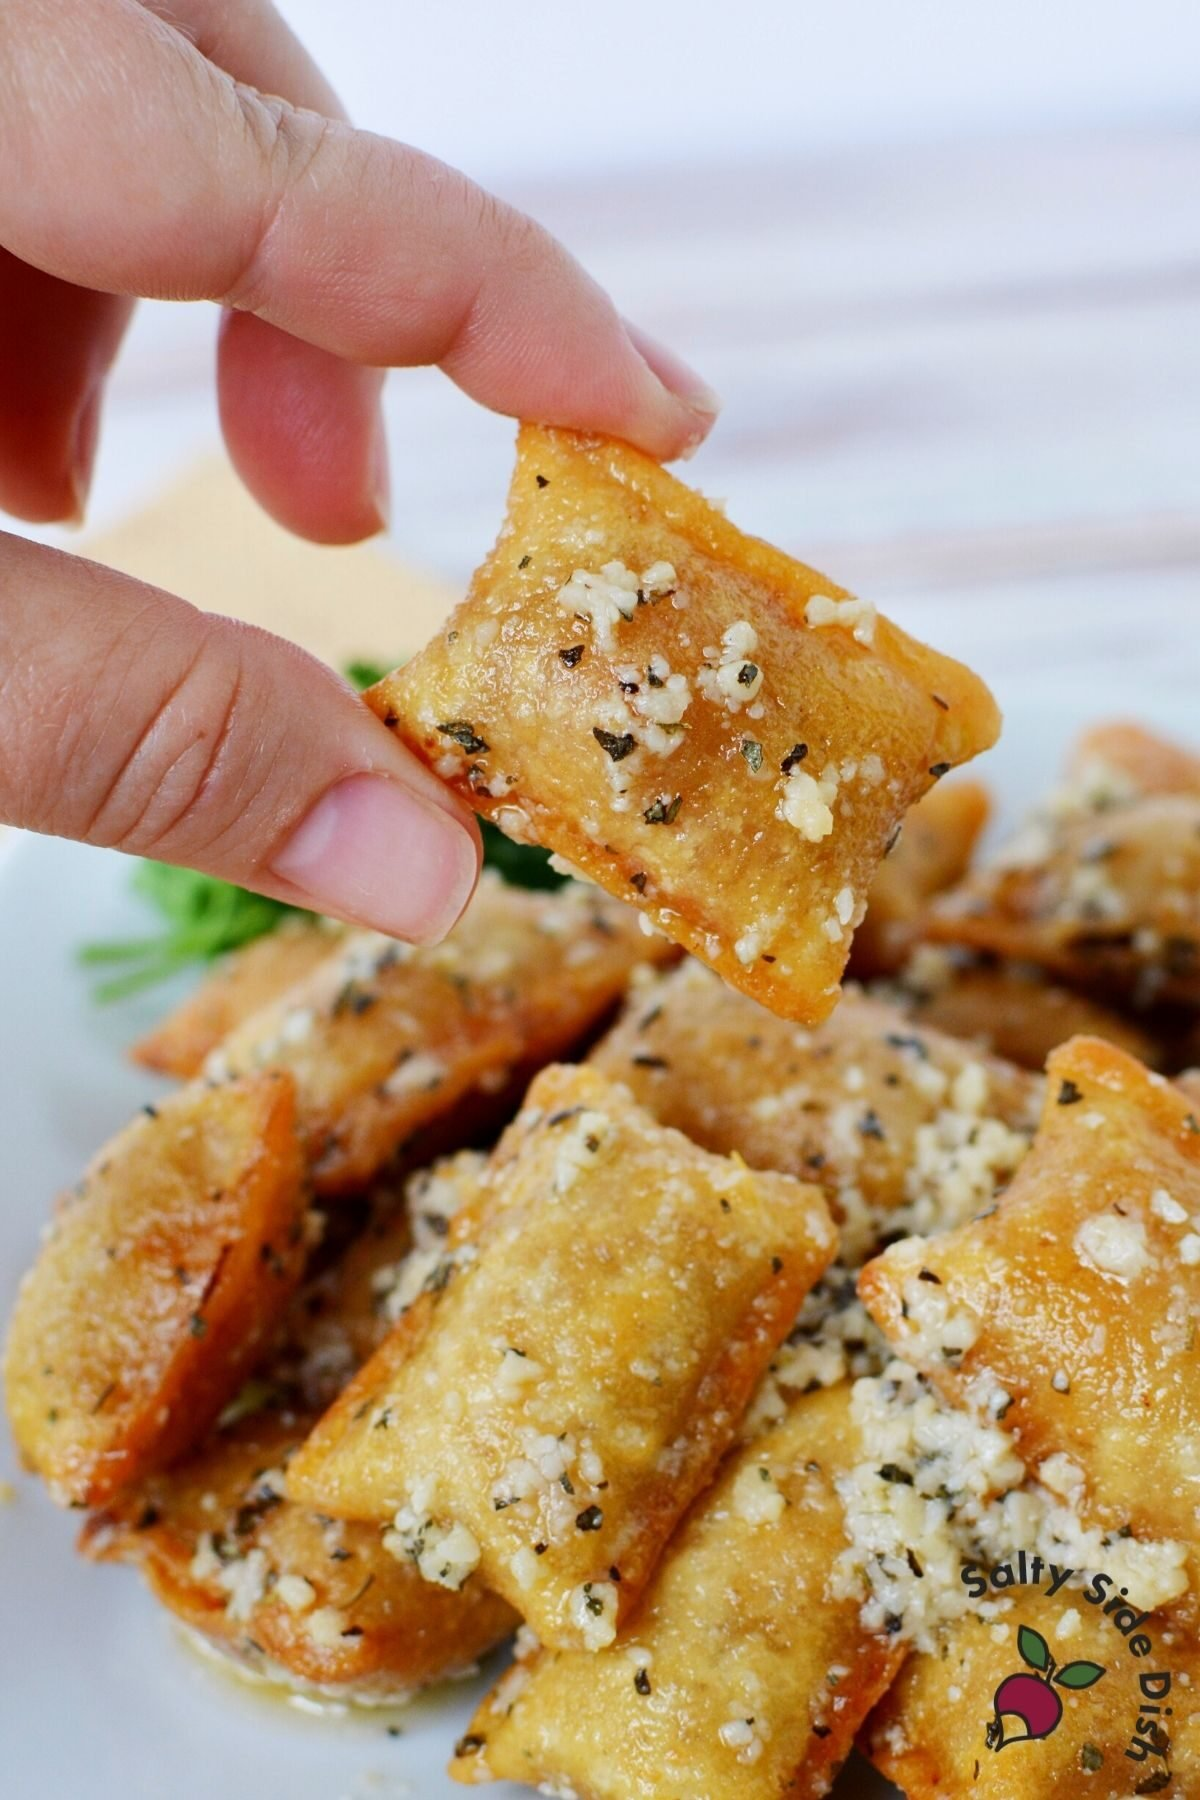 tiktok pizza rolls being held by a hand